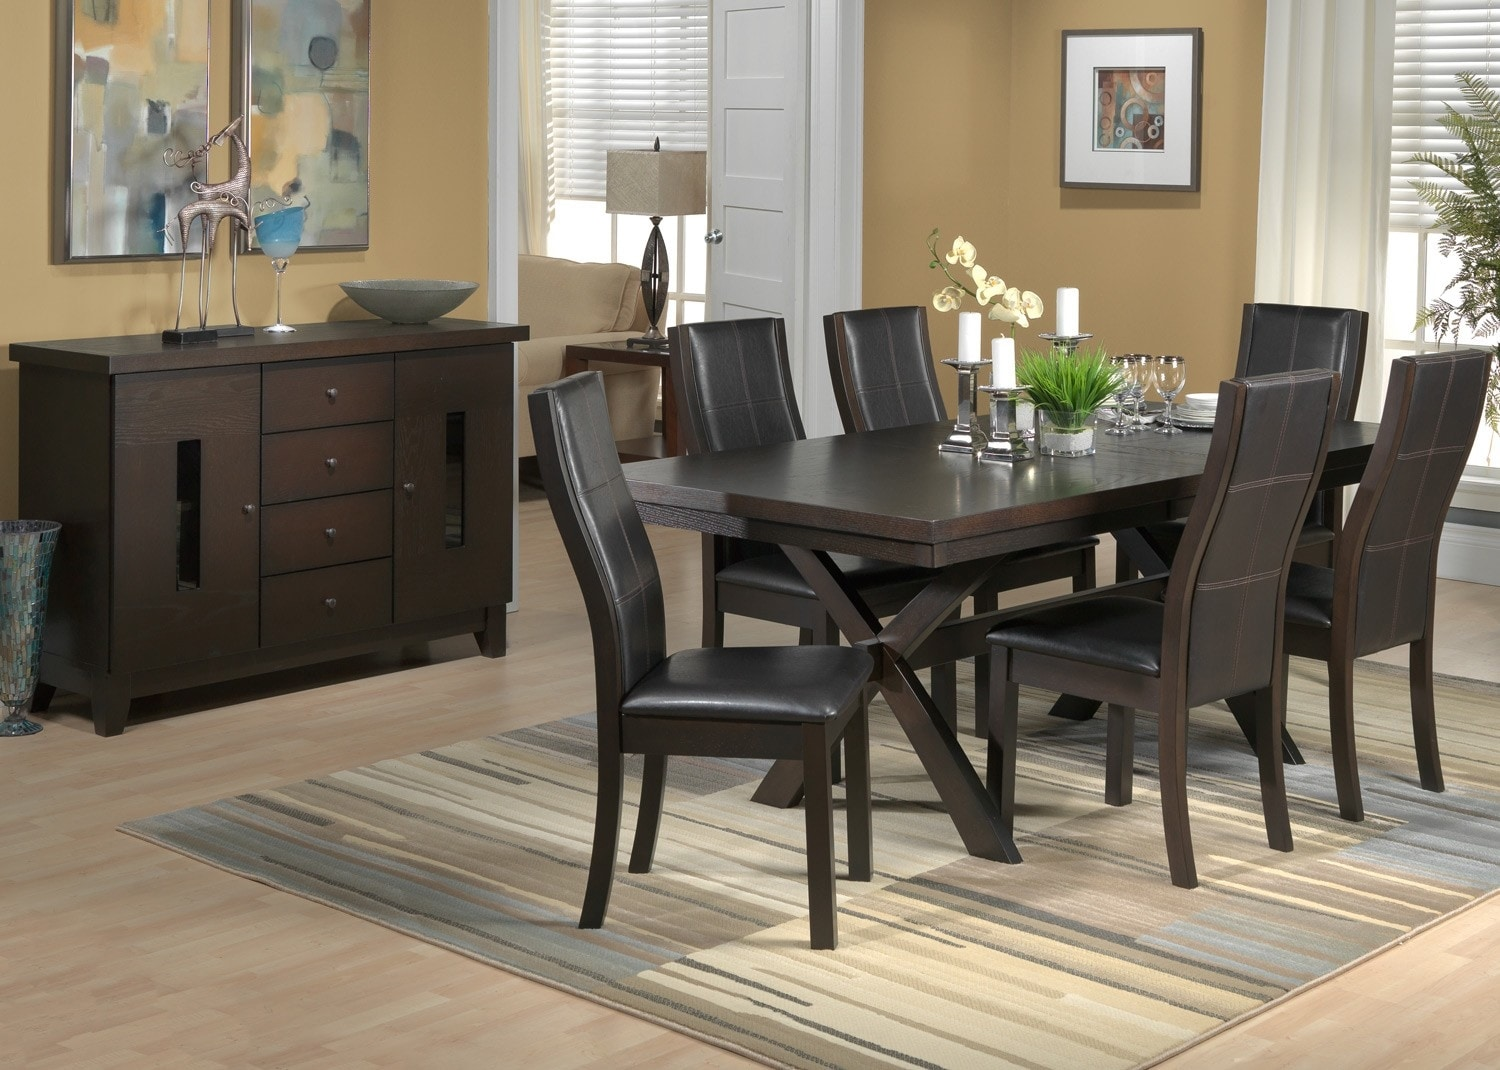 Grethell 8 Pc Dining Room Package - Espresso